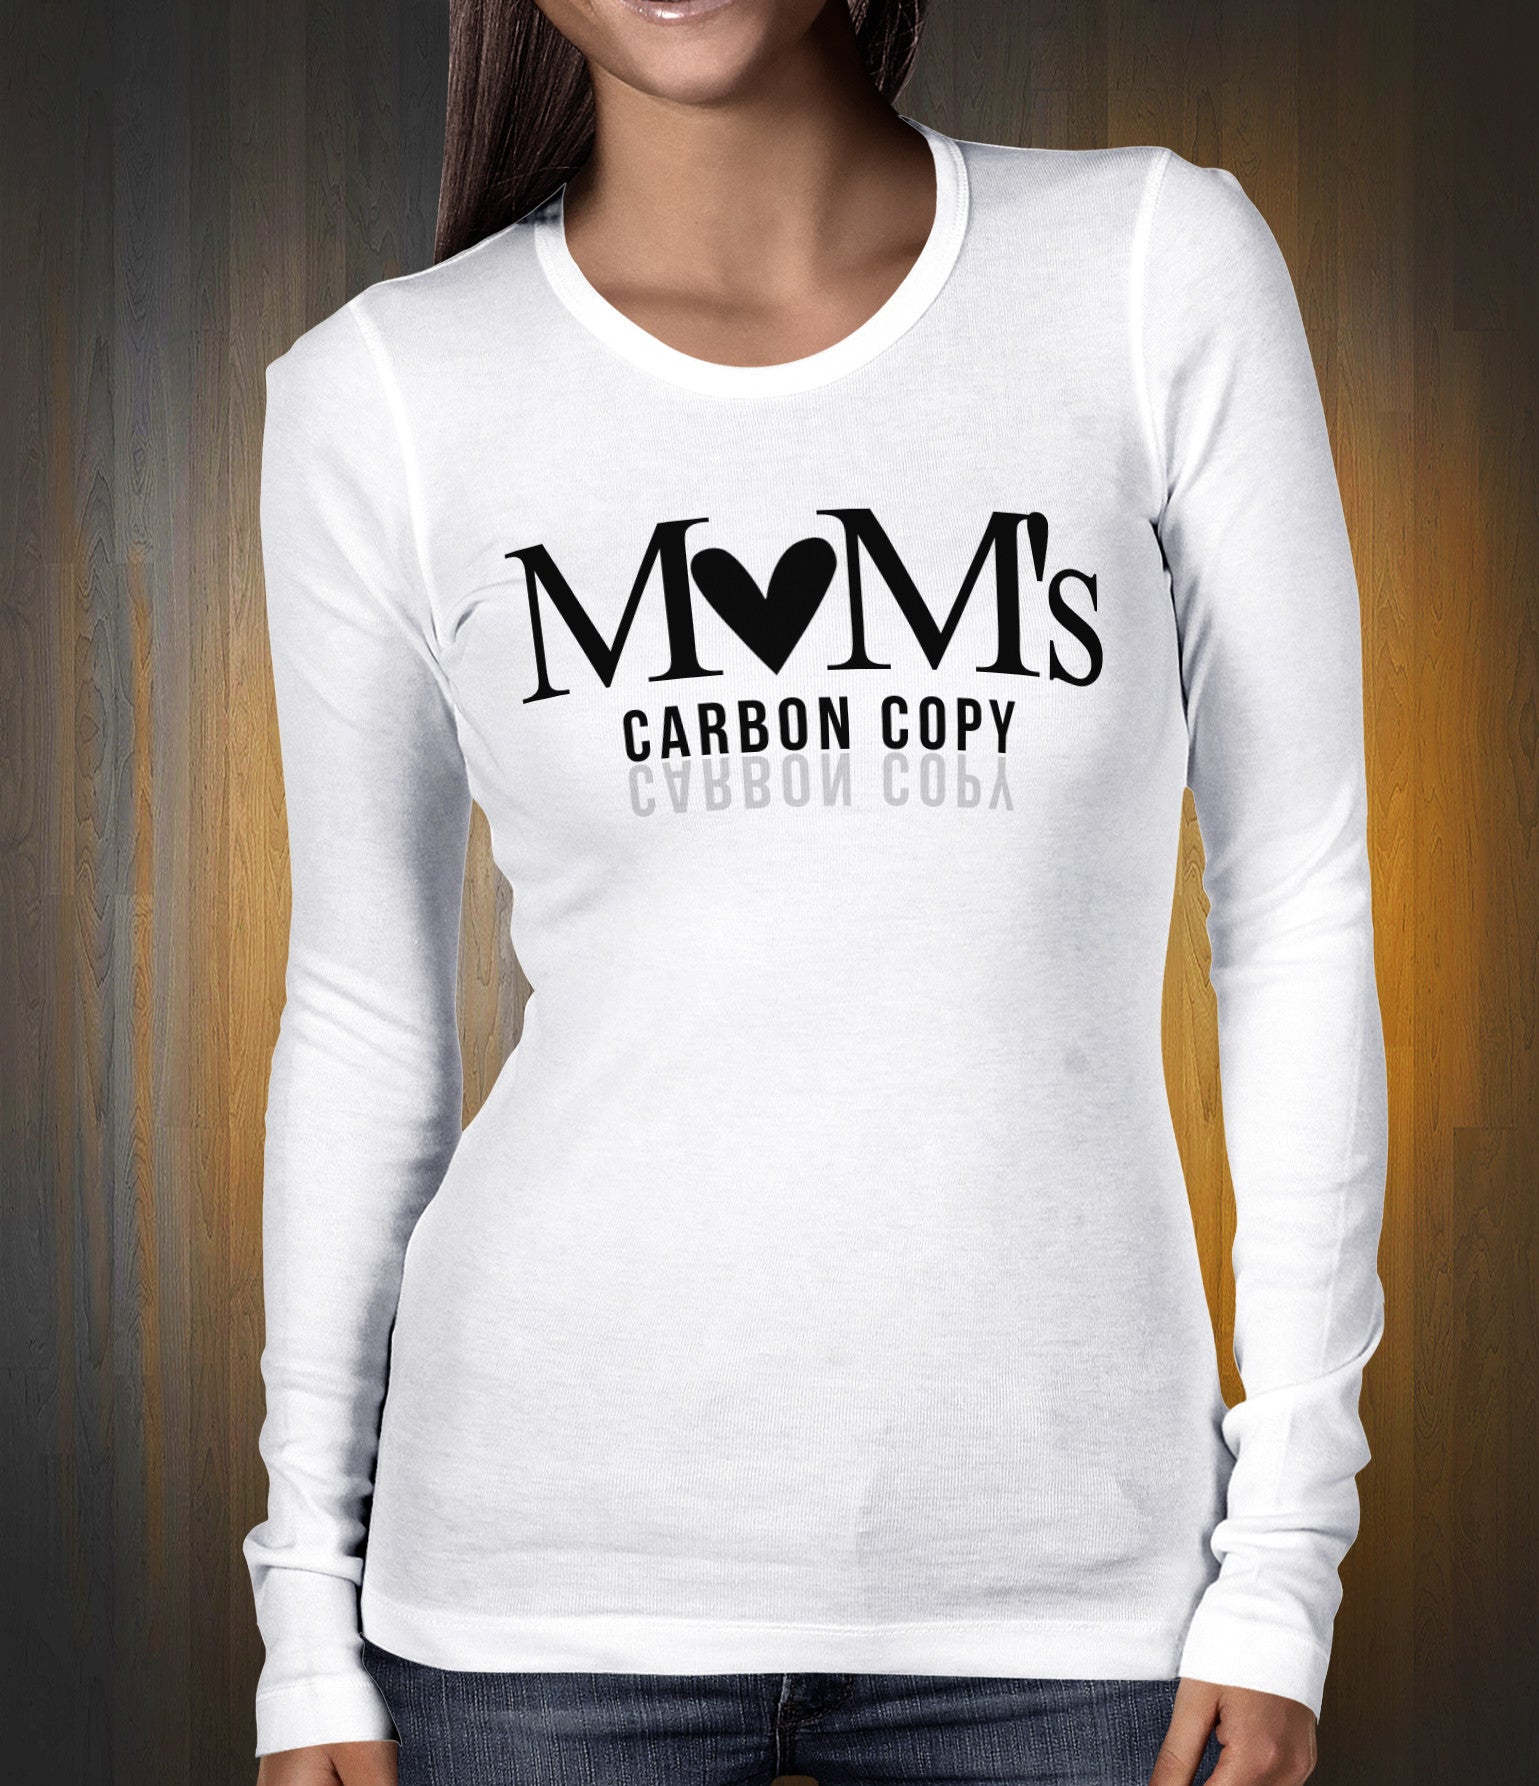 Mom's Carbon Copy Crew Neck Long Sleeve